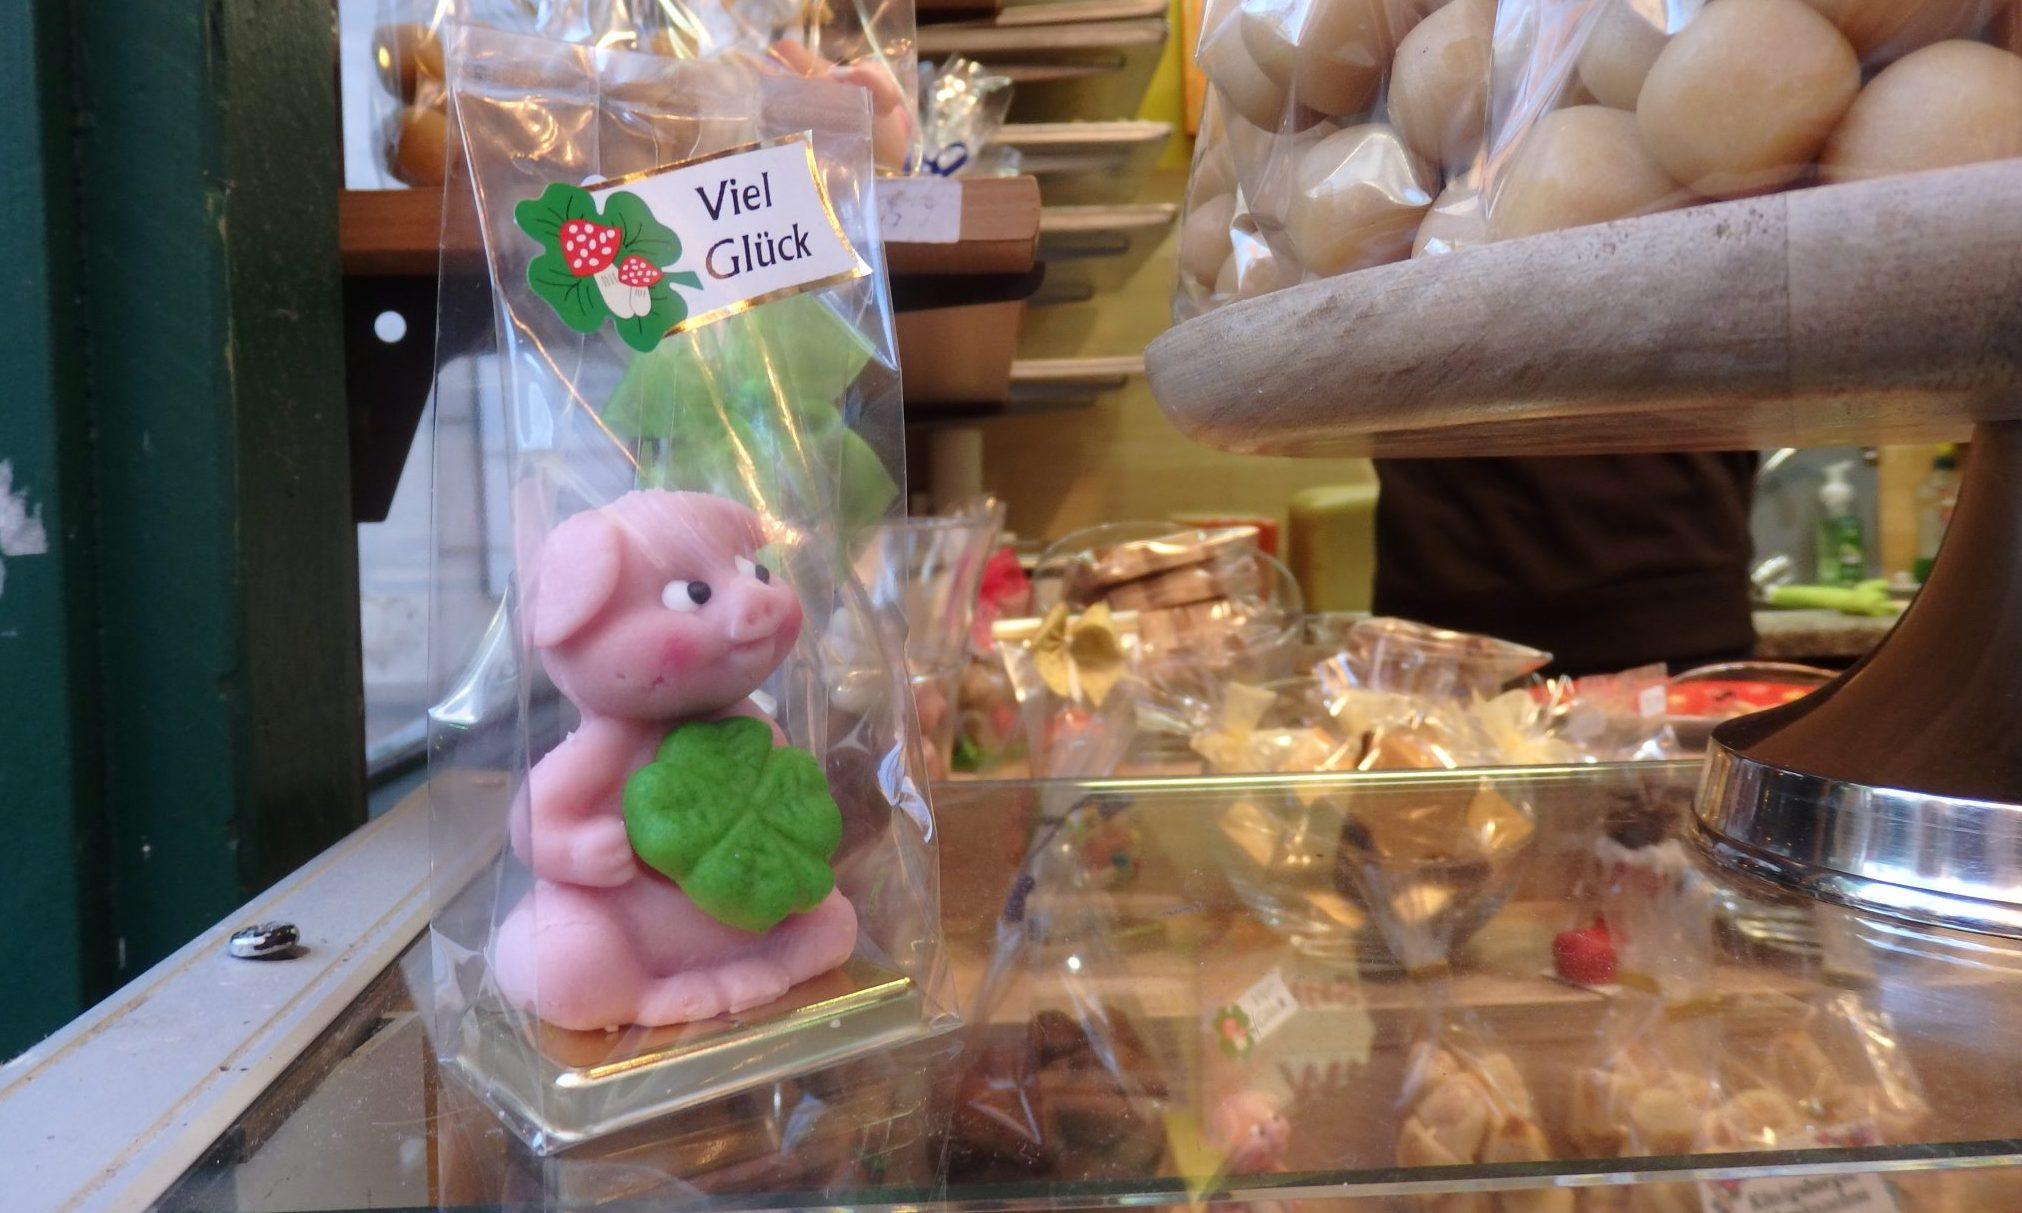 or a marzipan pig?